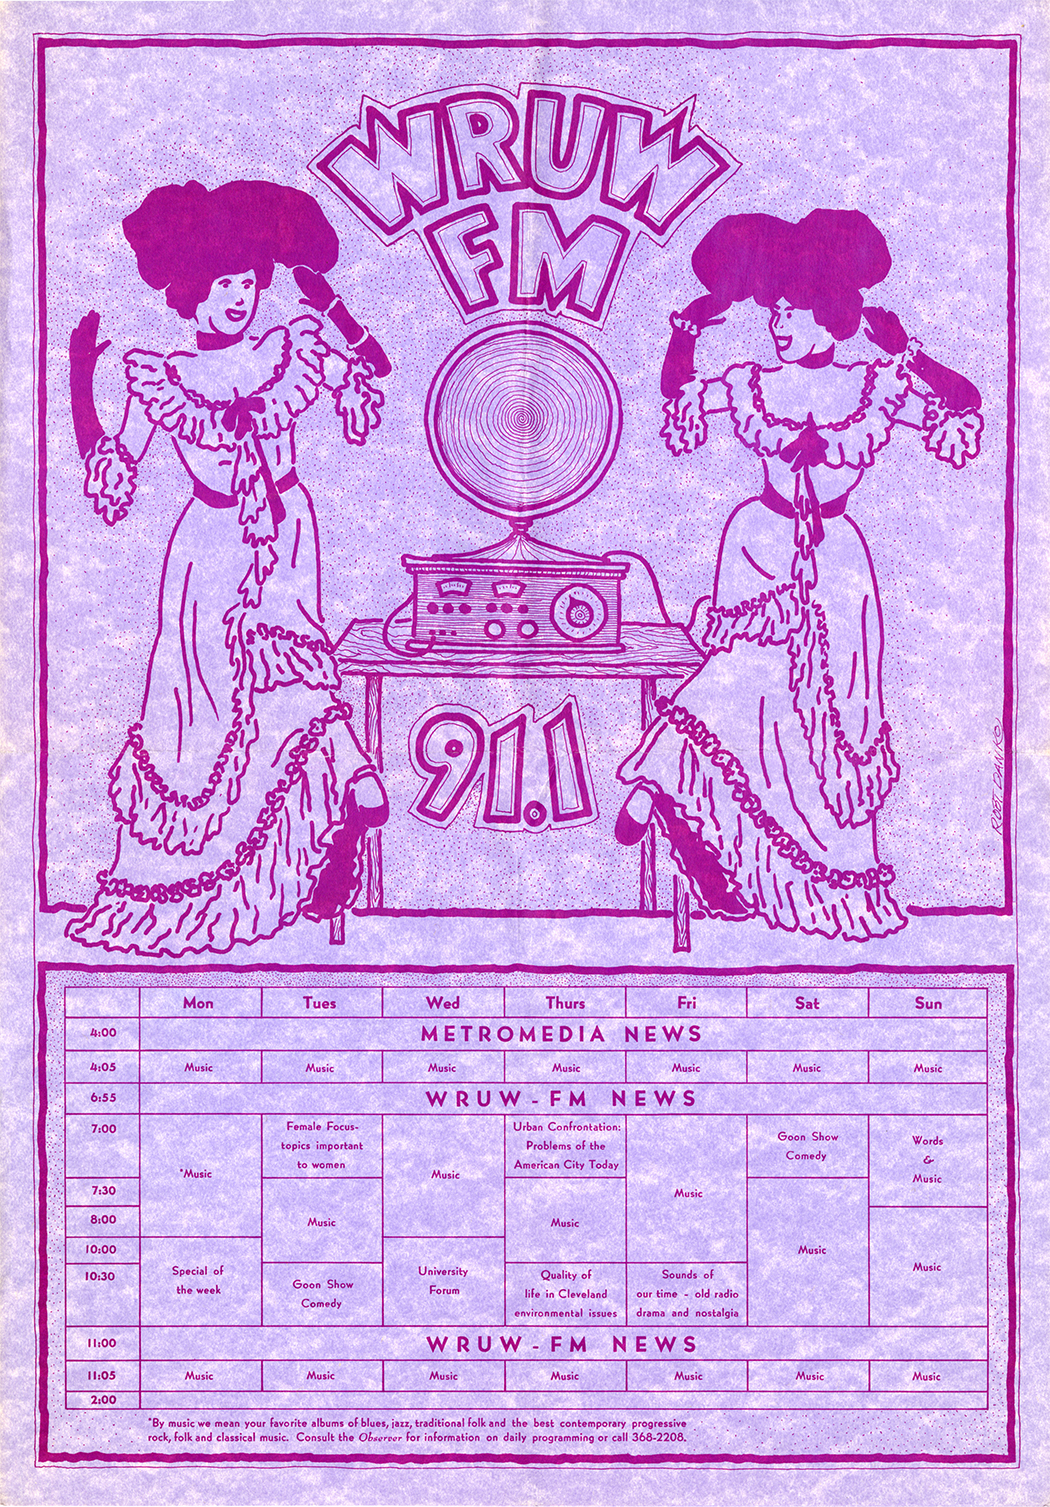 A purple and pink WRUW Programming Guide from the early 1970s with schdule and a cartoon image of early 20th century women dancing to a phonograph.